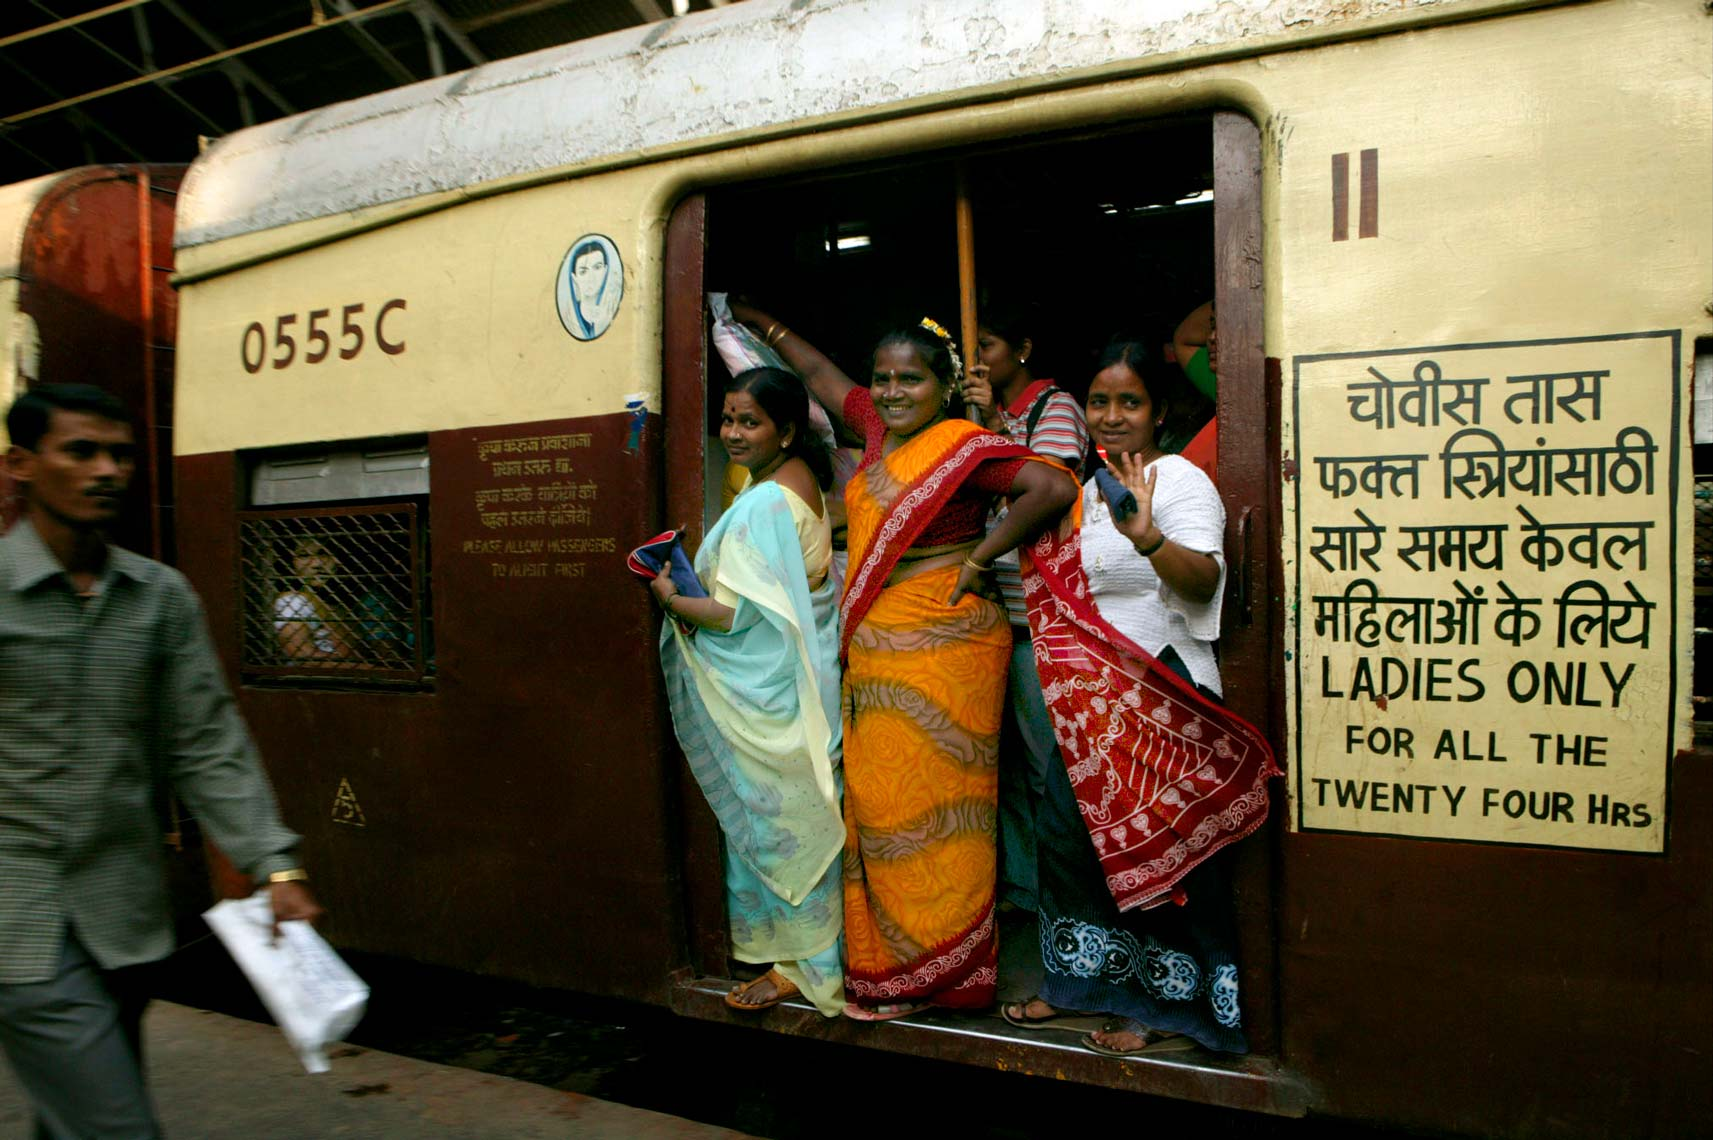 mumbai_trains65.jpg